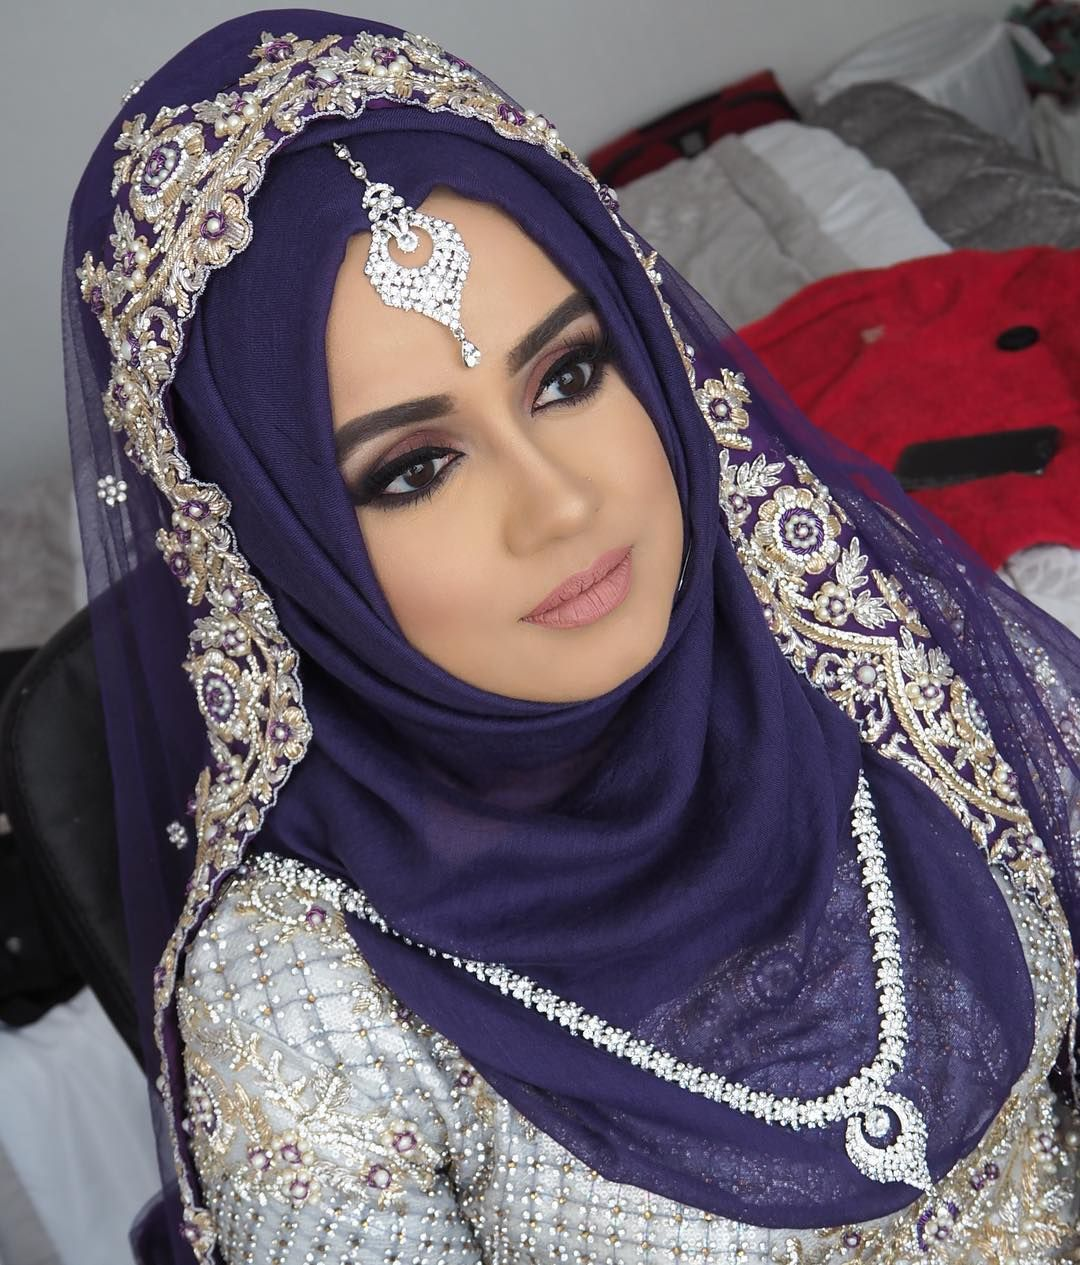 My Stunning Hijabi Bride On Her Walima Day No Trial